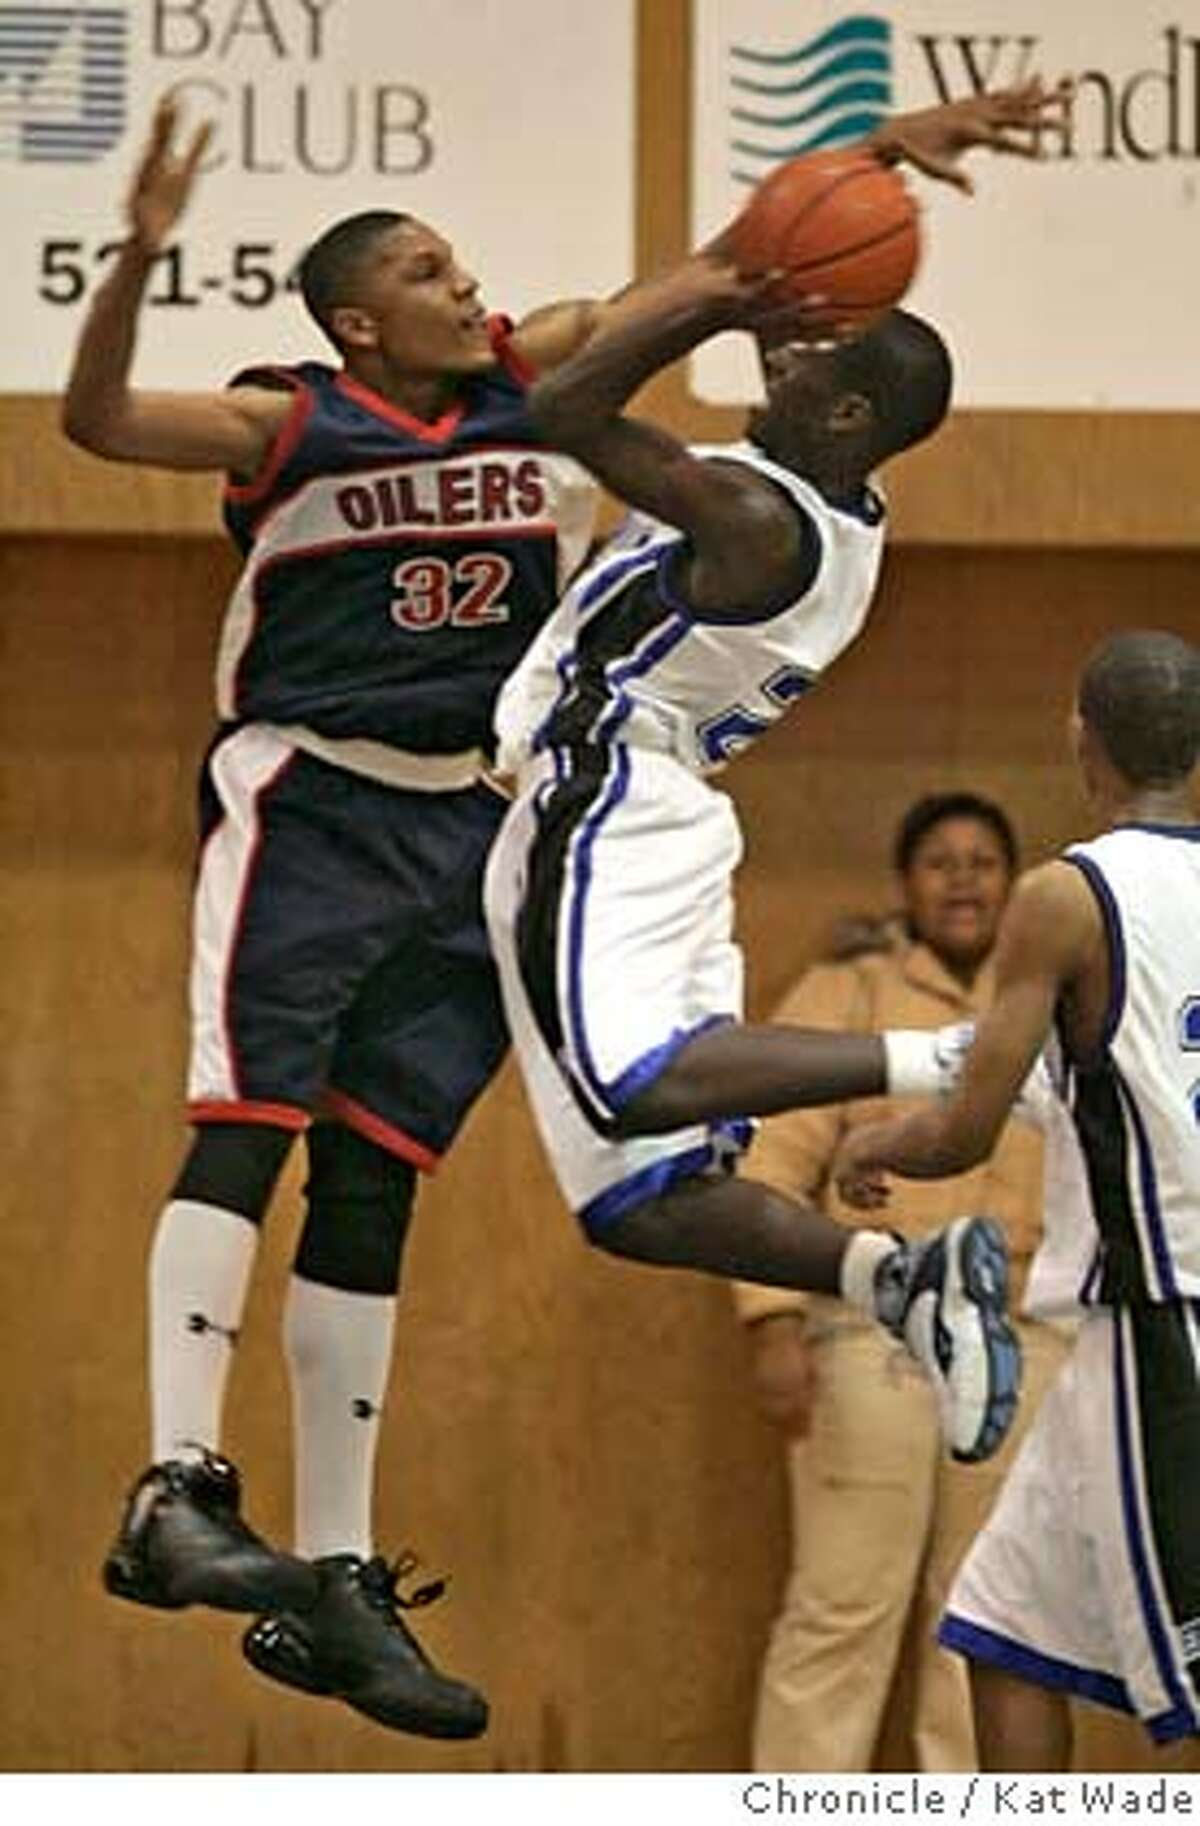 RICHMOND02_220_KW_.jpg The Oilers Elijah Holman, (LEFT) back for his first game in 14 months since a suspension and after being shot blocks #22 Mario Brown during the second half of the game on February 2, 2007 when Richmond High School Oilers beat the Encinal High School Jets in Alameda at Encinal during the last few minutes of the game. Kat Wade/The Chronicle Mandatory Credit for San Francisco Chronicle and photographer, Kat Wade, Mags out